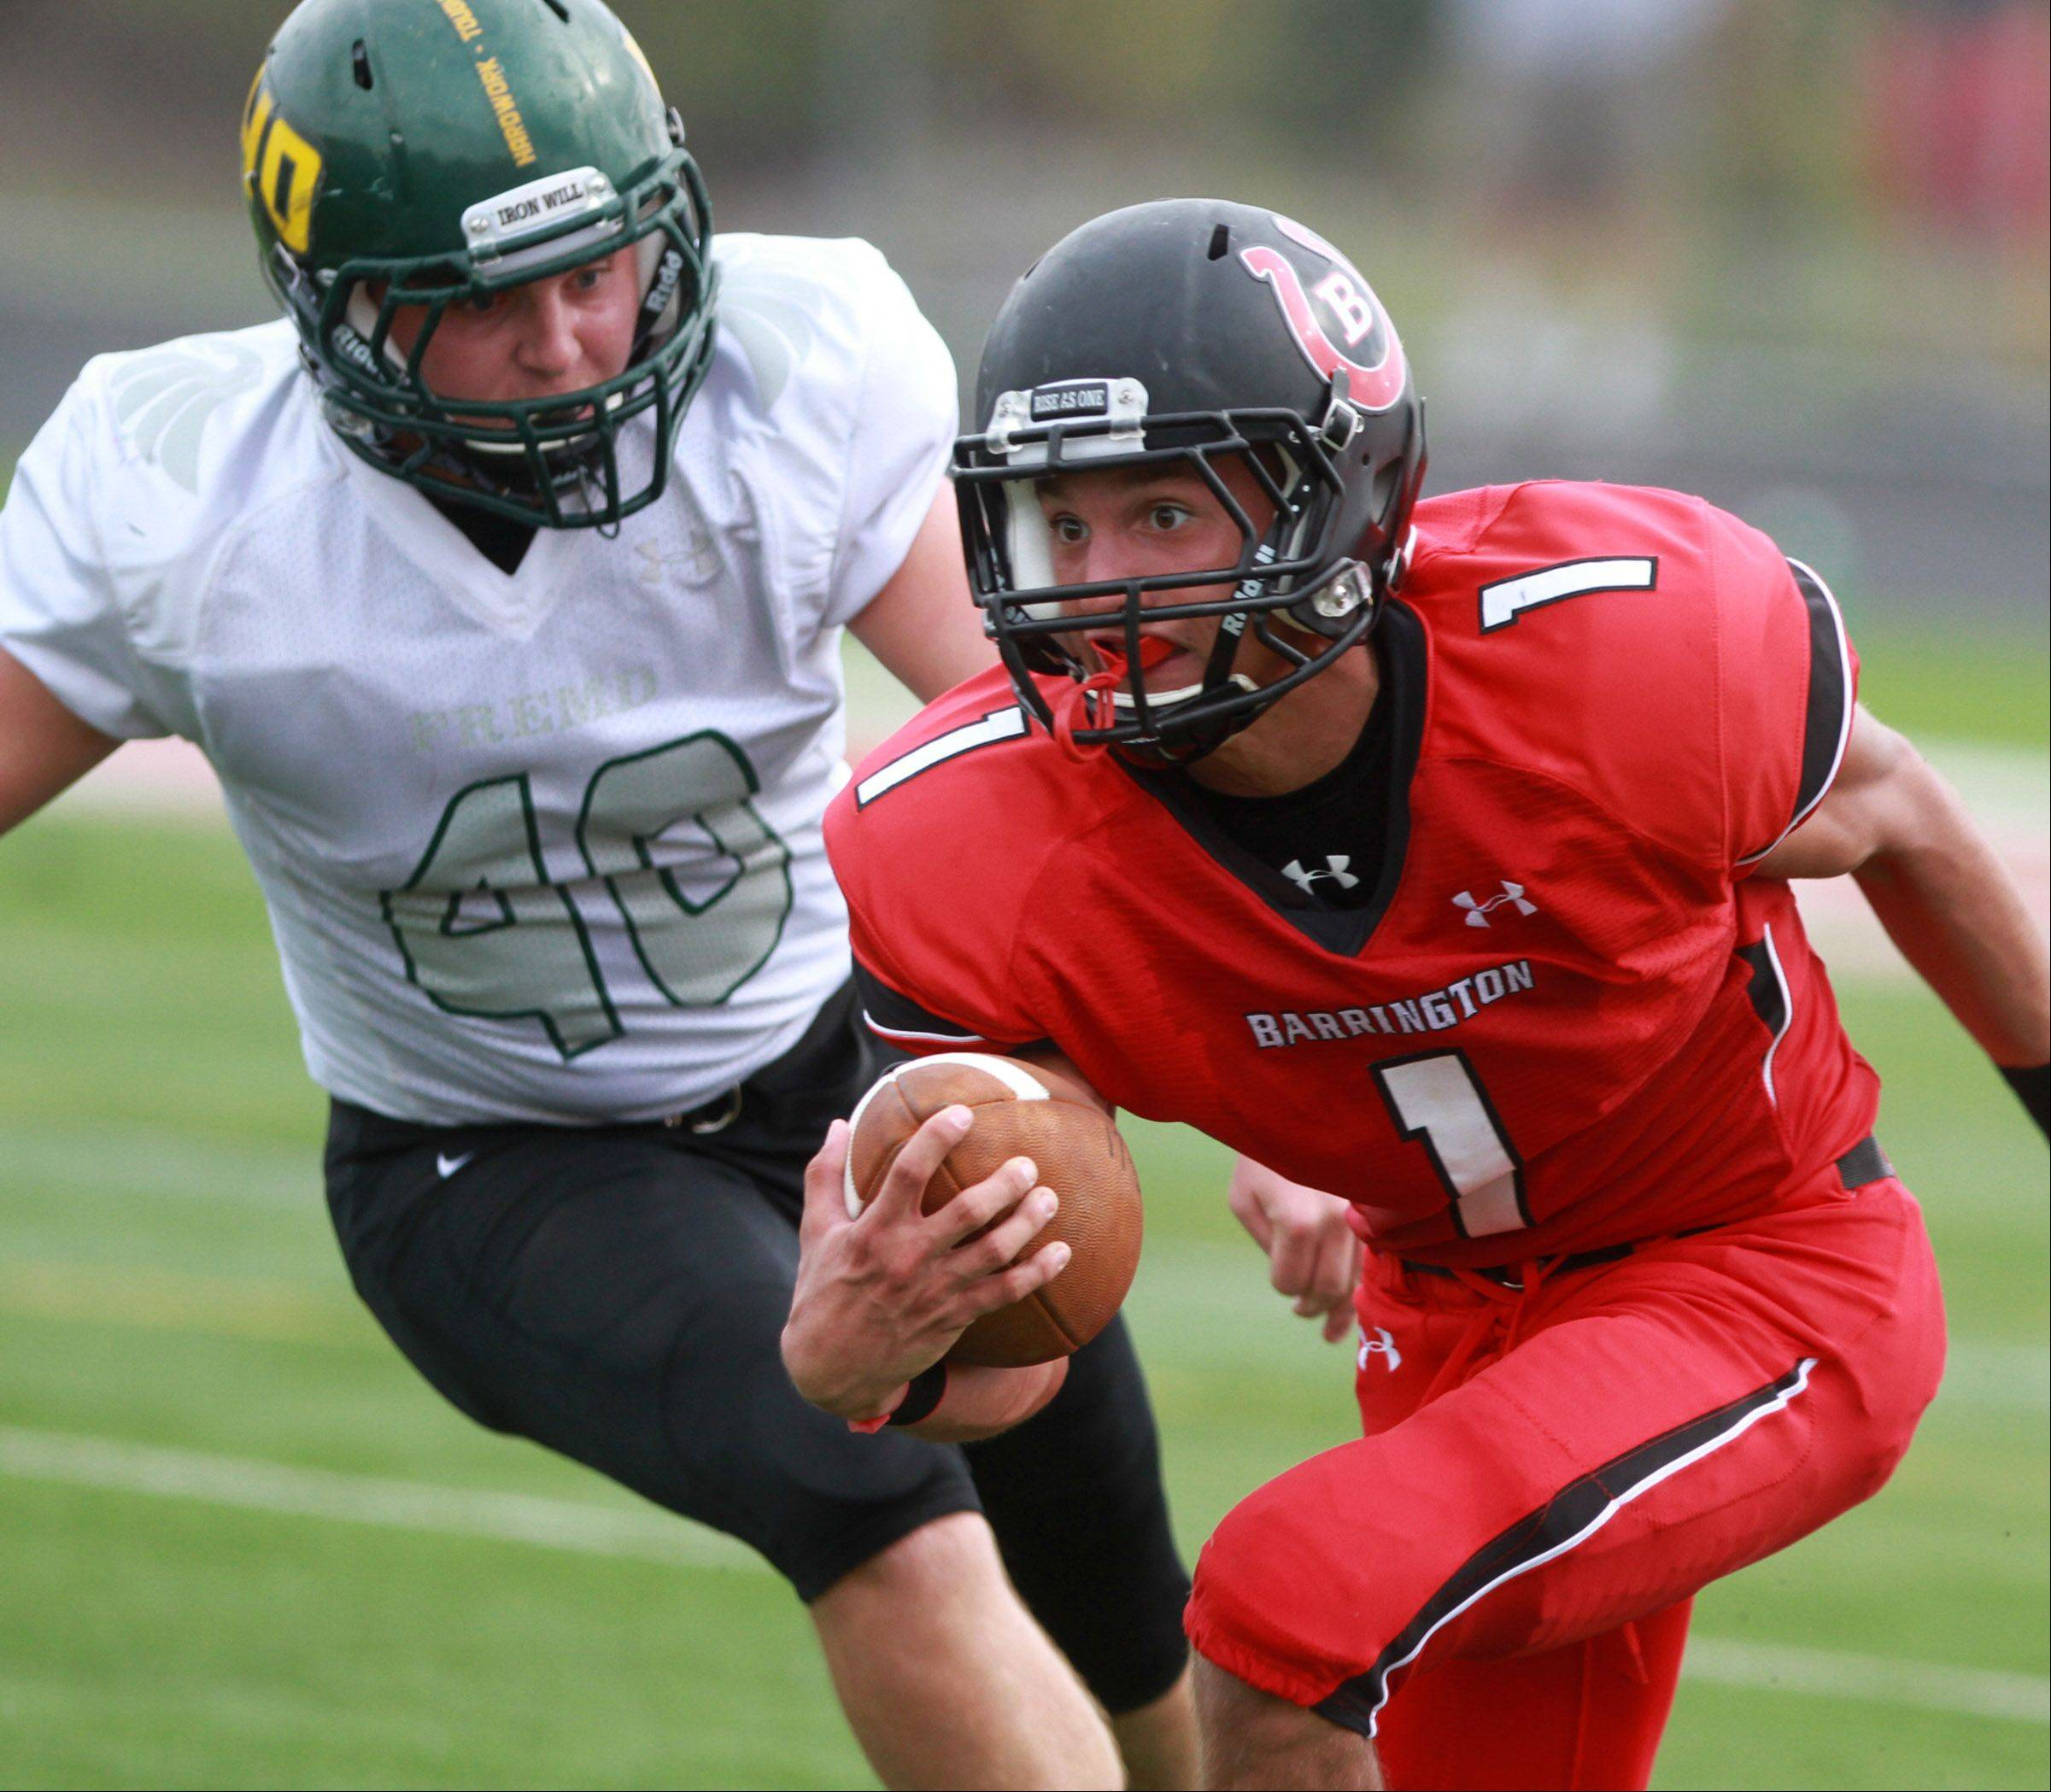 Barrington's Scotty Miller escapes Fremd defender Ryan Tarallo at Barrington on Saturday,October 5.